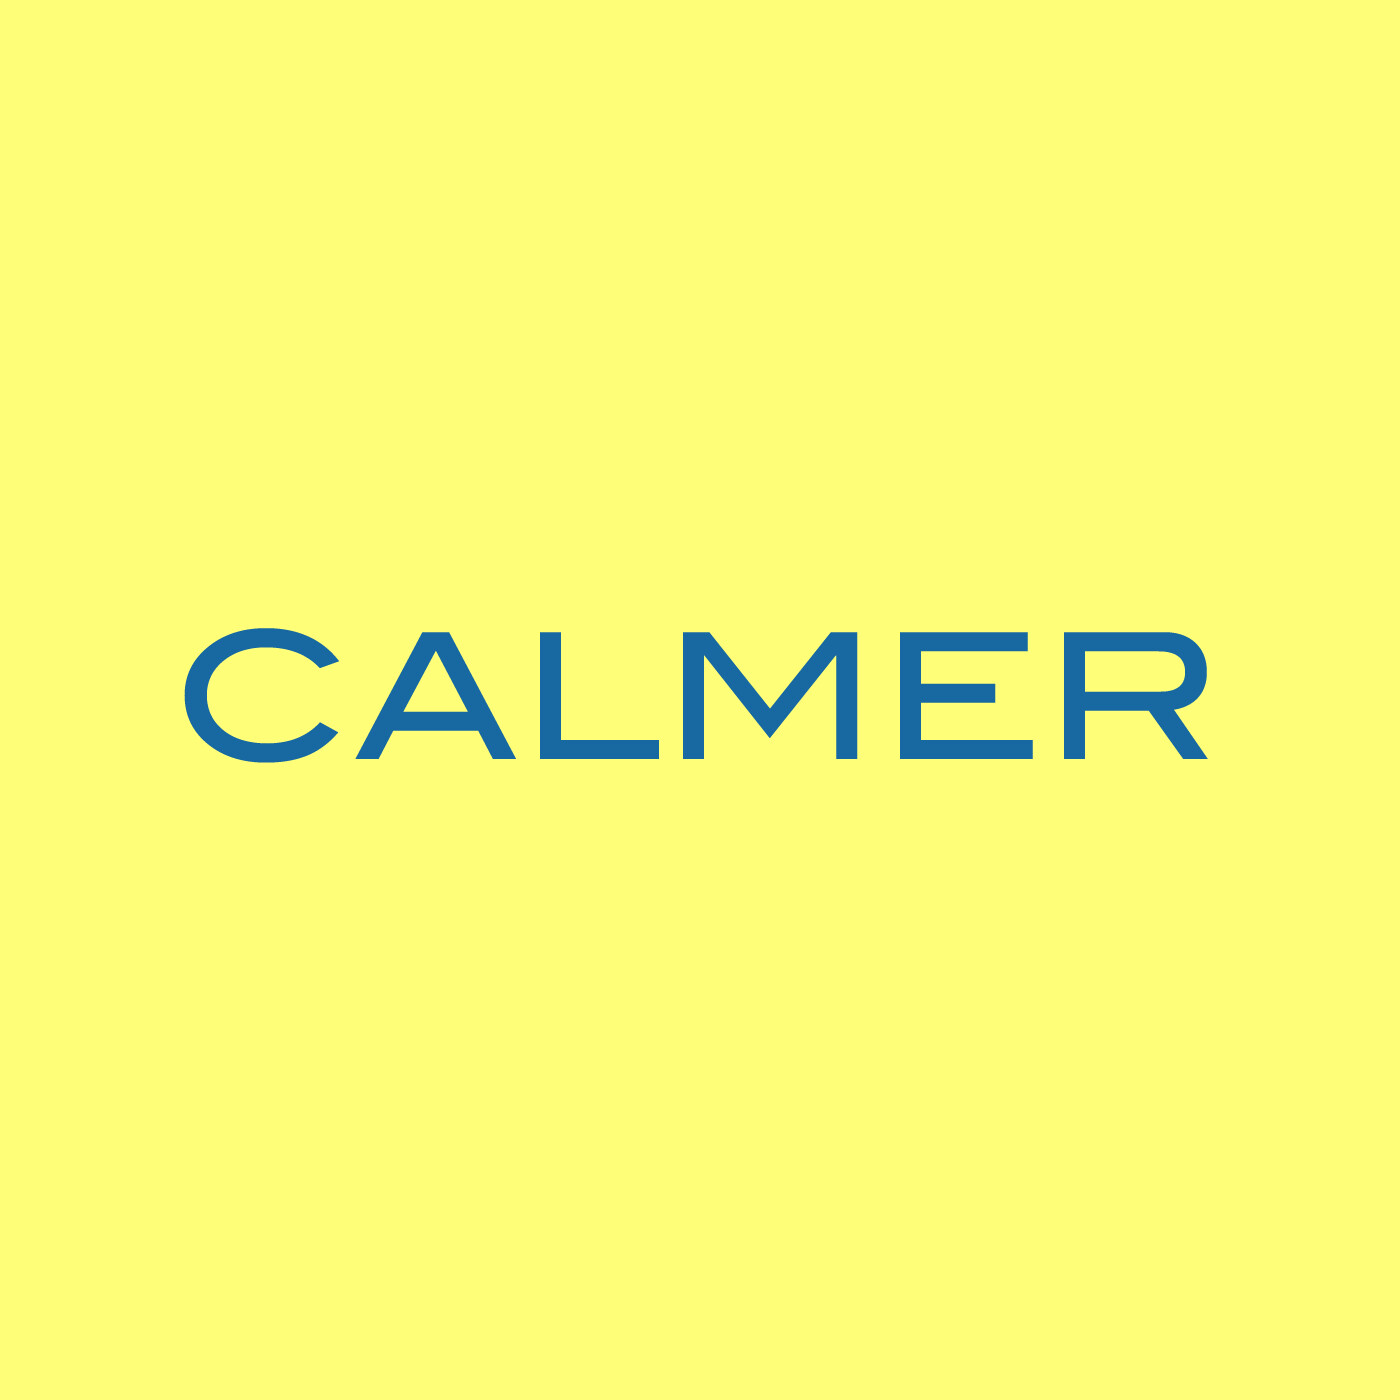 1115: Experience Higher Energies and Become Calmer